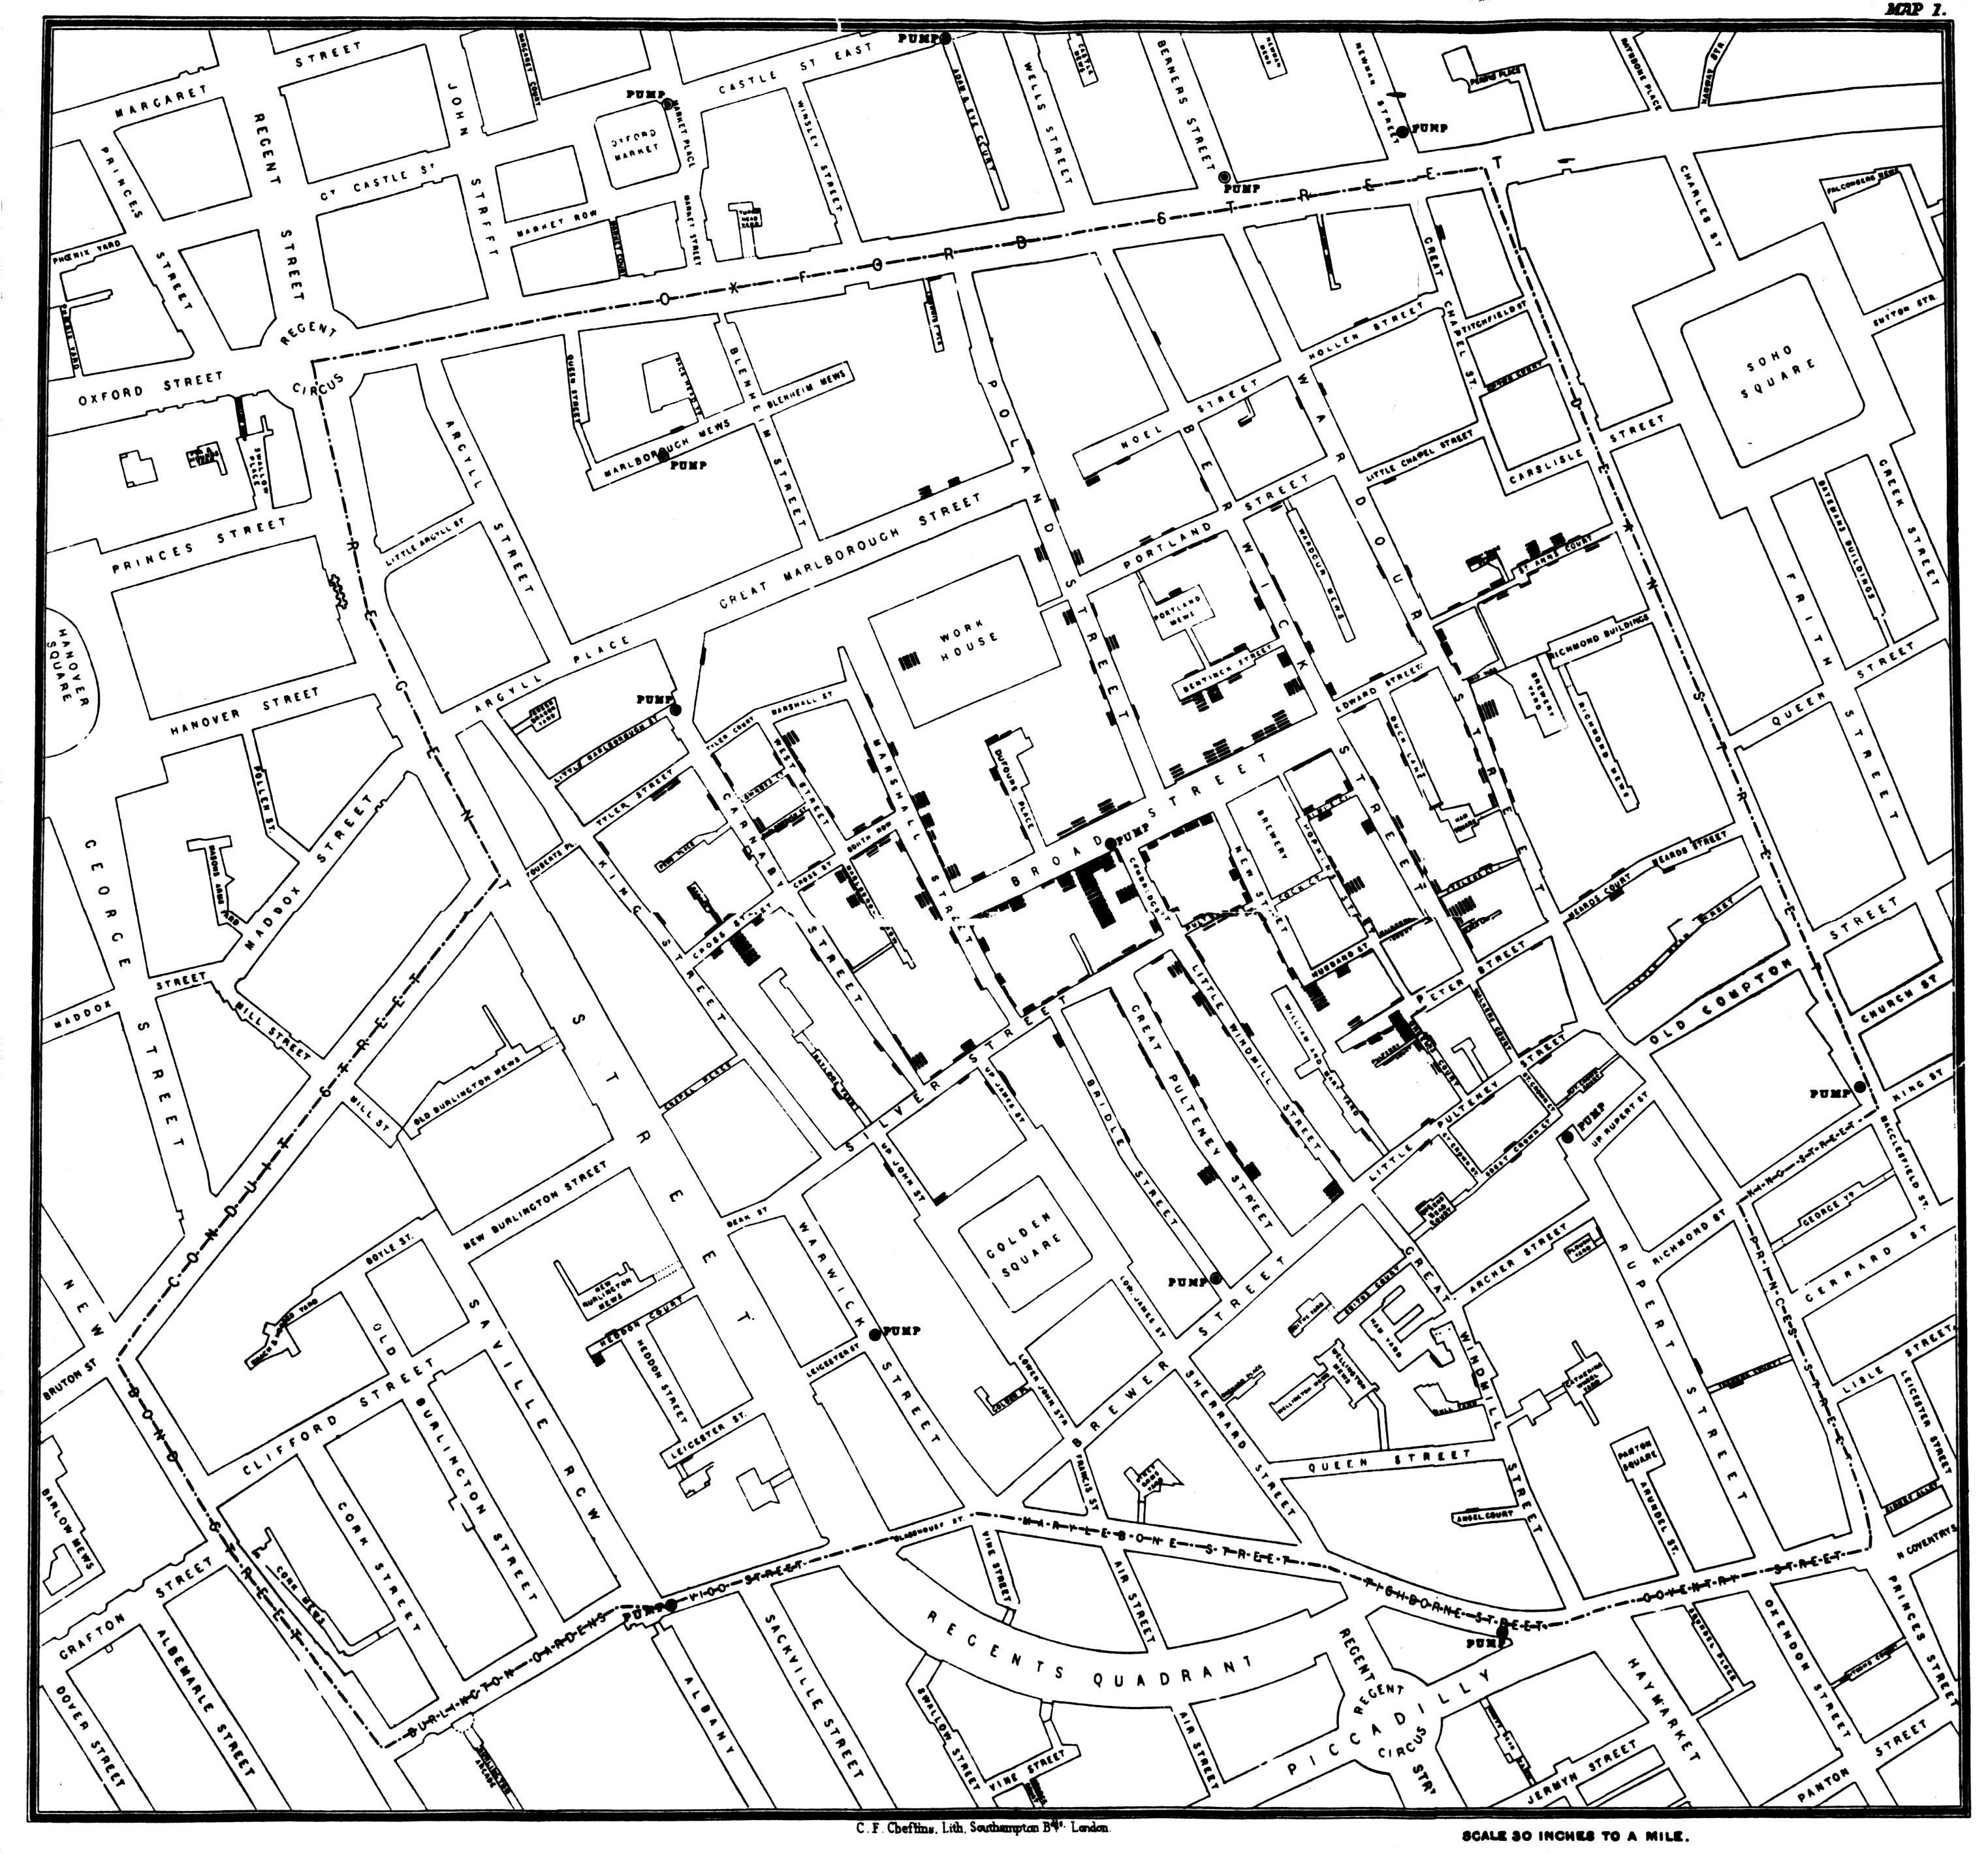 john-snow-cholera-map-1854